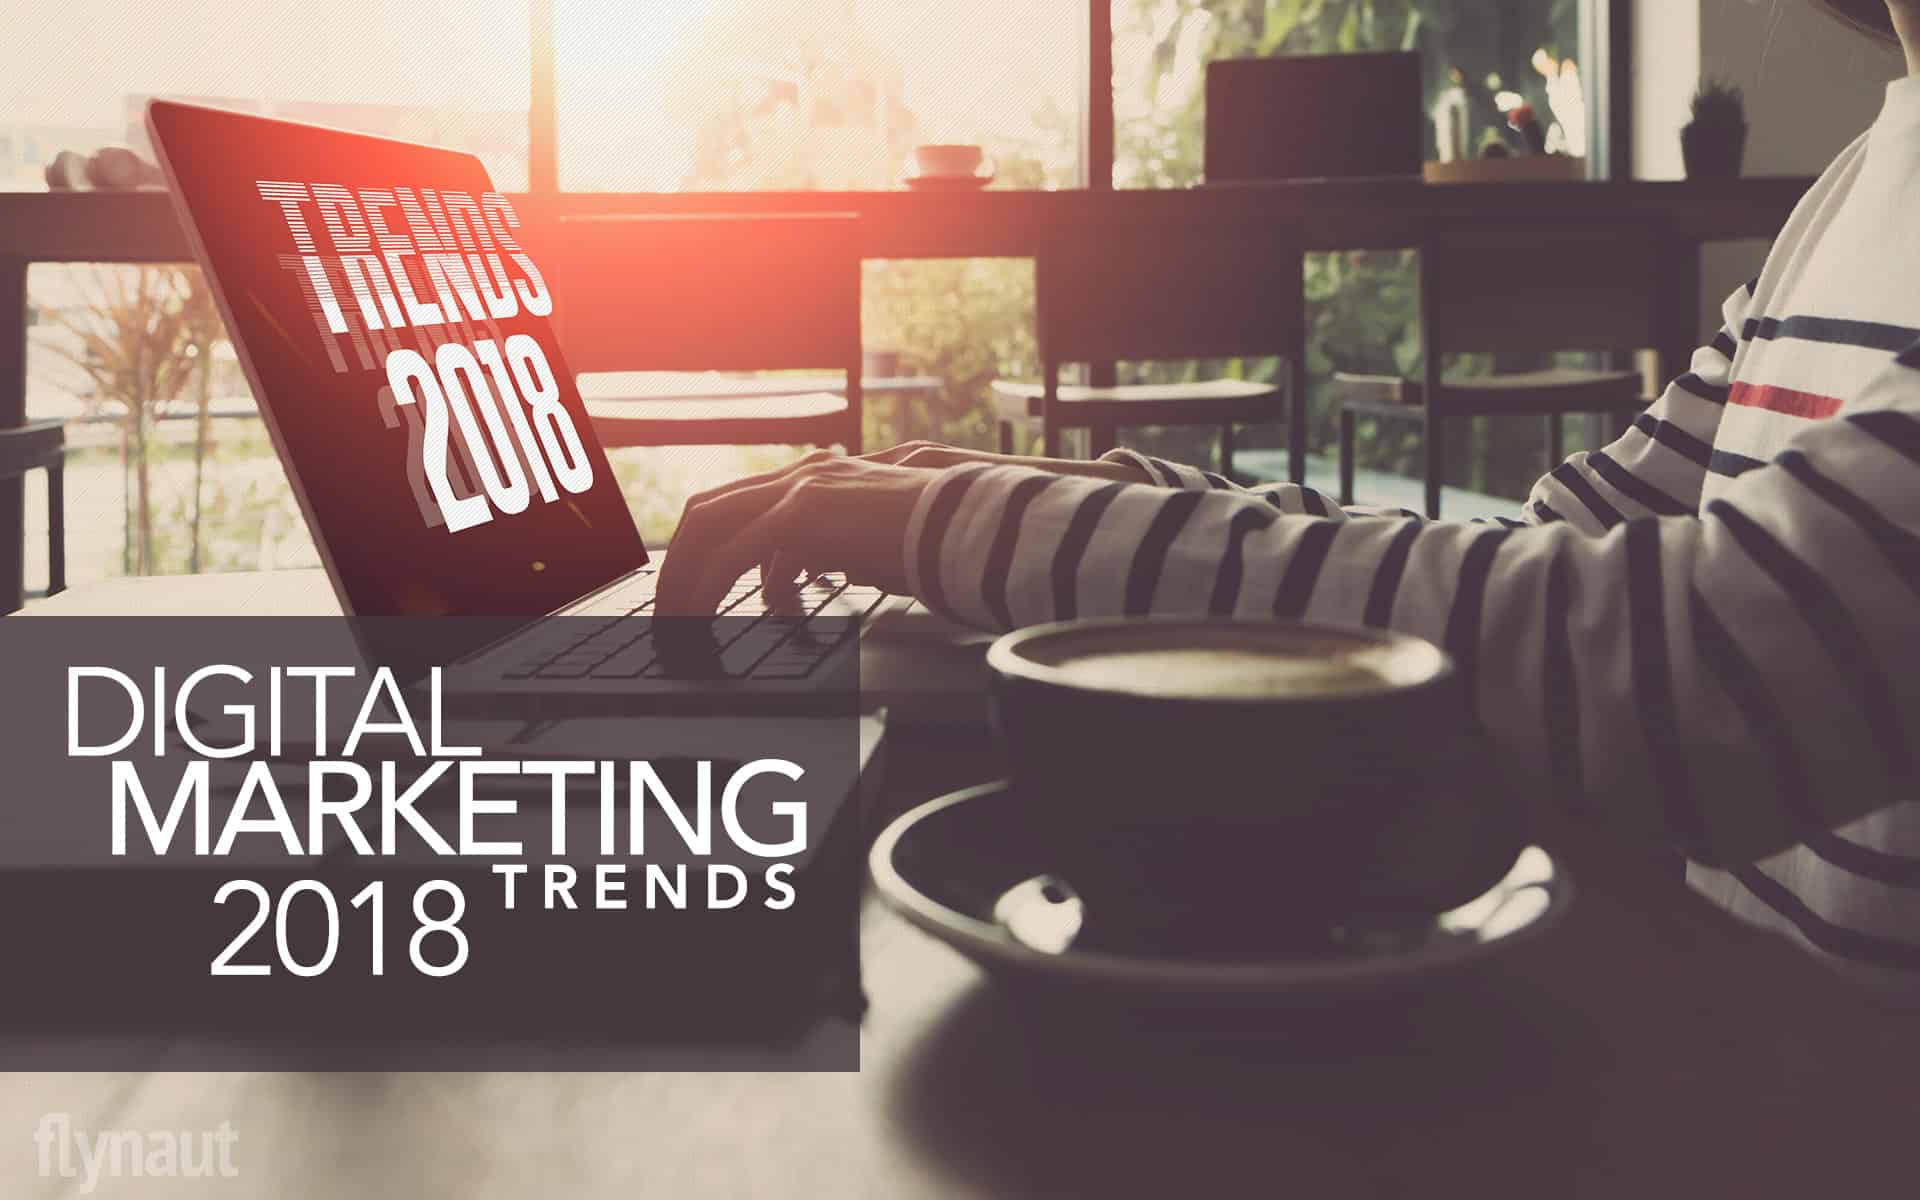 Game changing Digital Marketing Trends in 2018